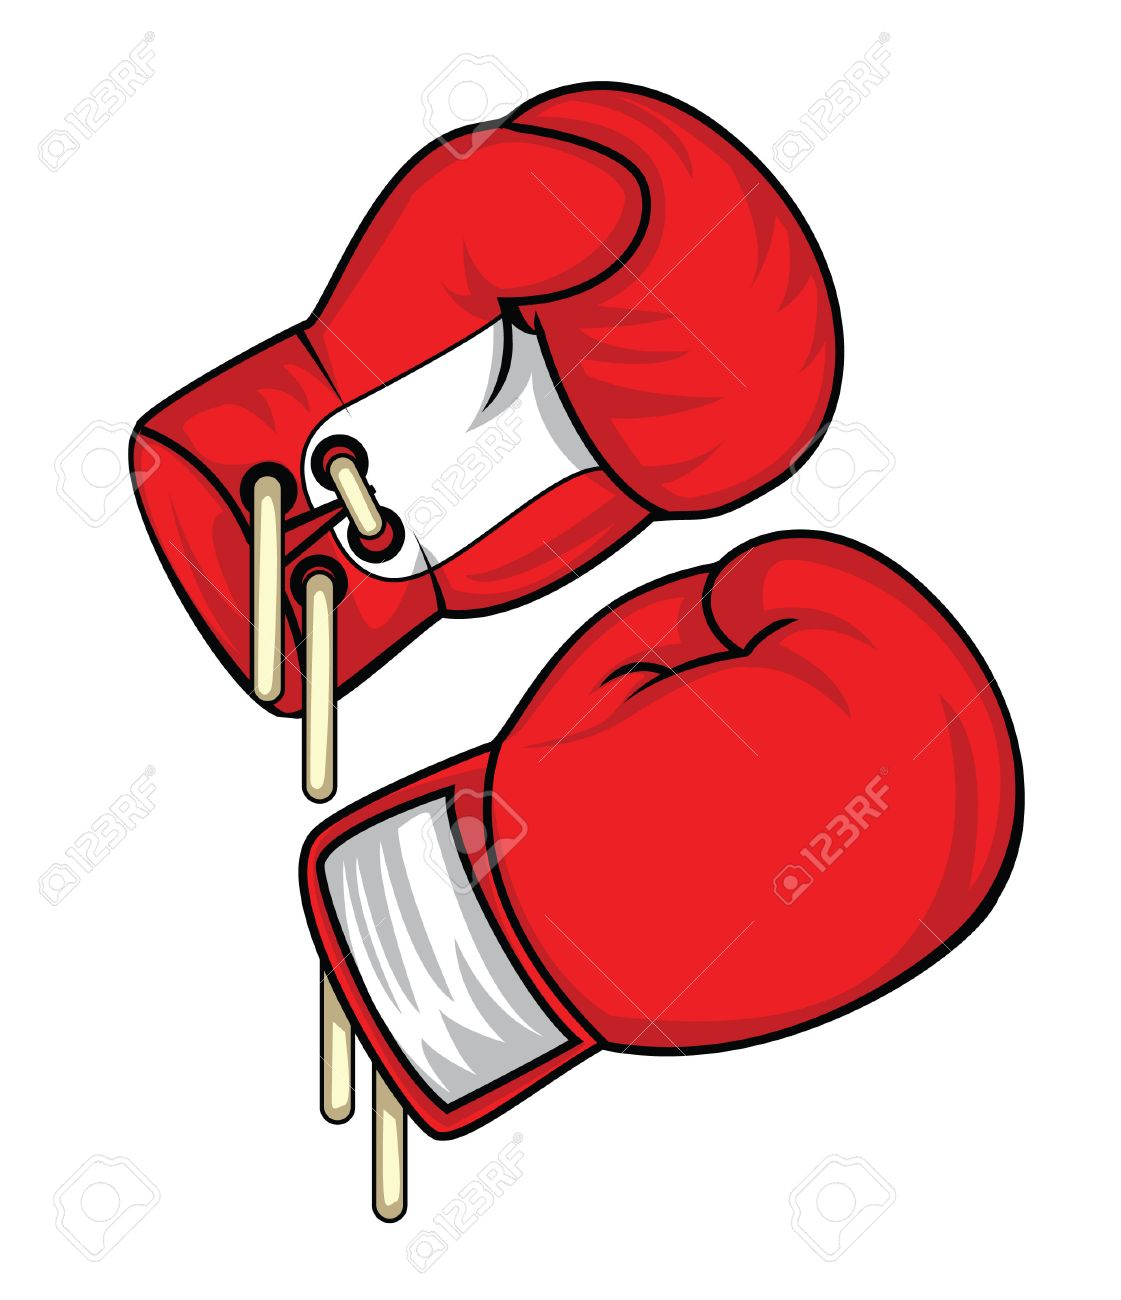 boxing glove royalty free cliparts vectors and stock illustration rh 123rf com boxing gloves vector art free boxing glove vector image